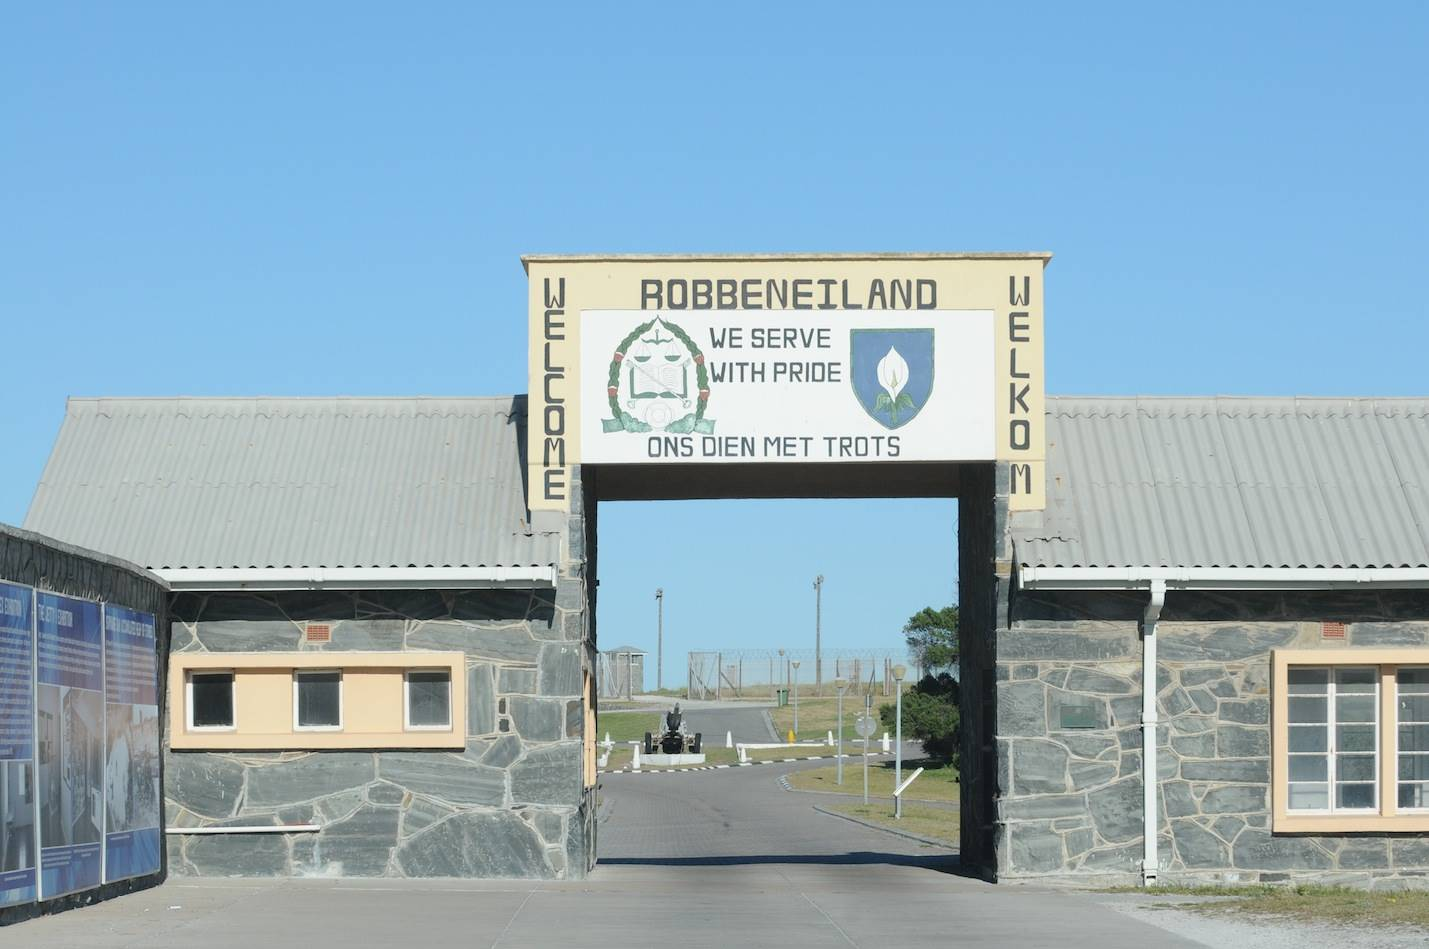 stone of contentionThe state of affairs at the Robben Island Museum has pitted stakeholder against stakeholder